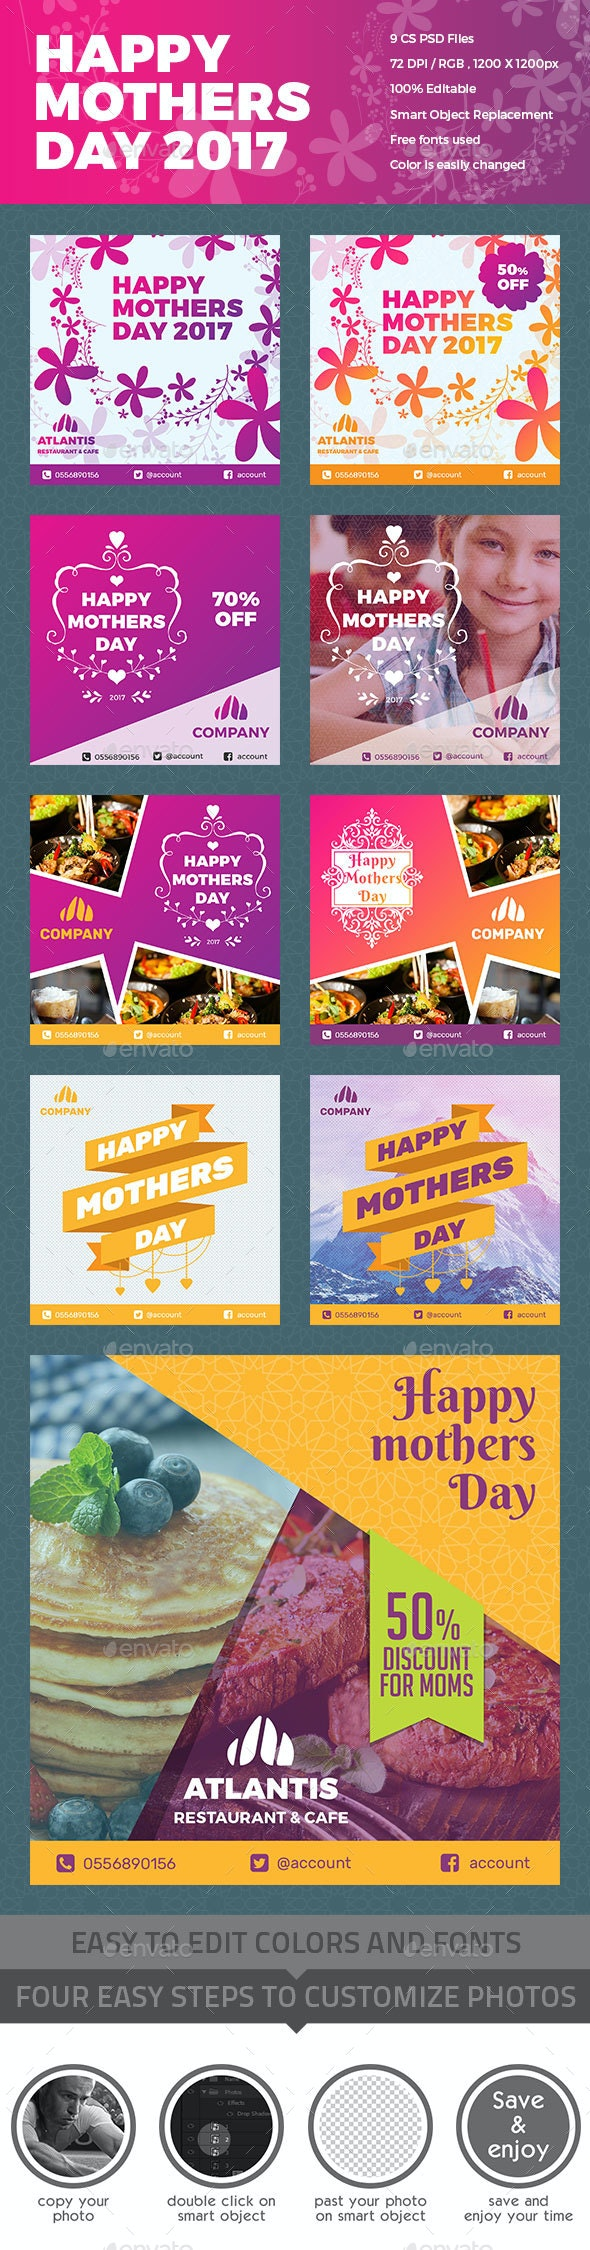 Mothers Day Instagram Promo Template - Social Media Web Elements